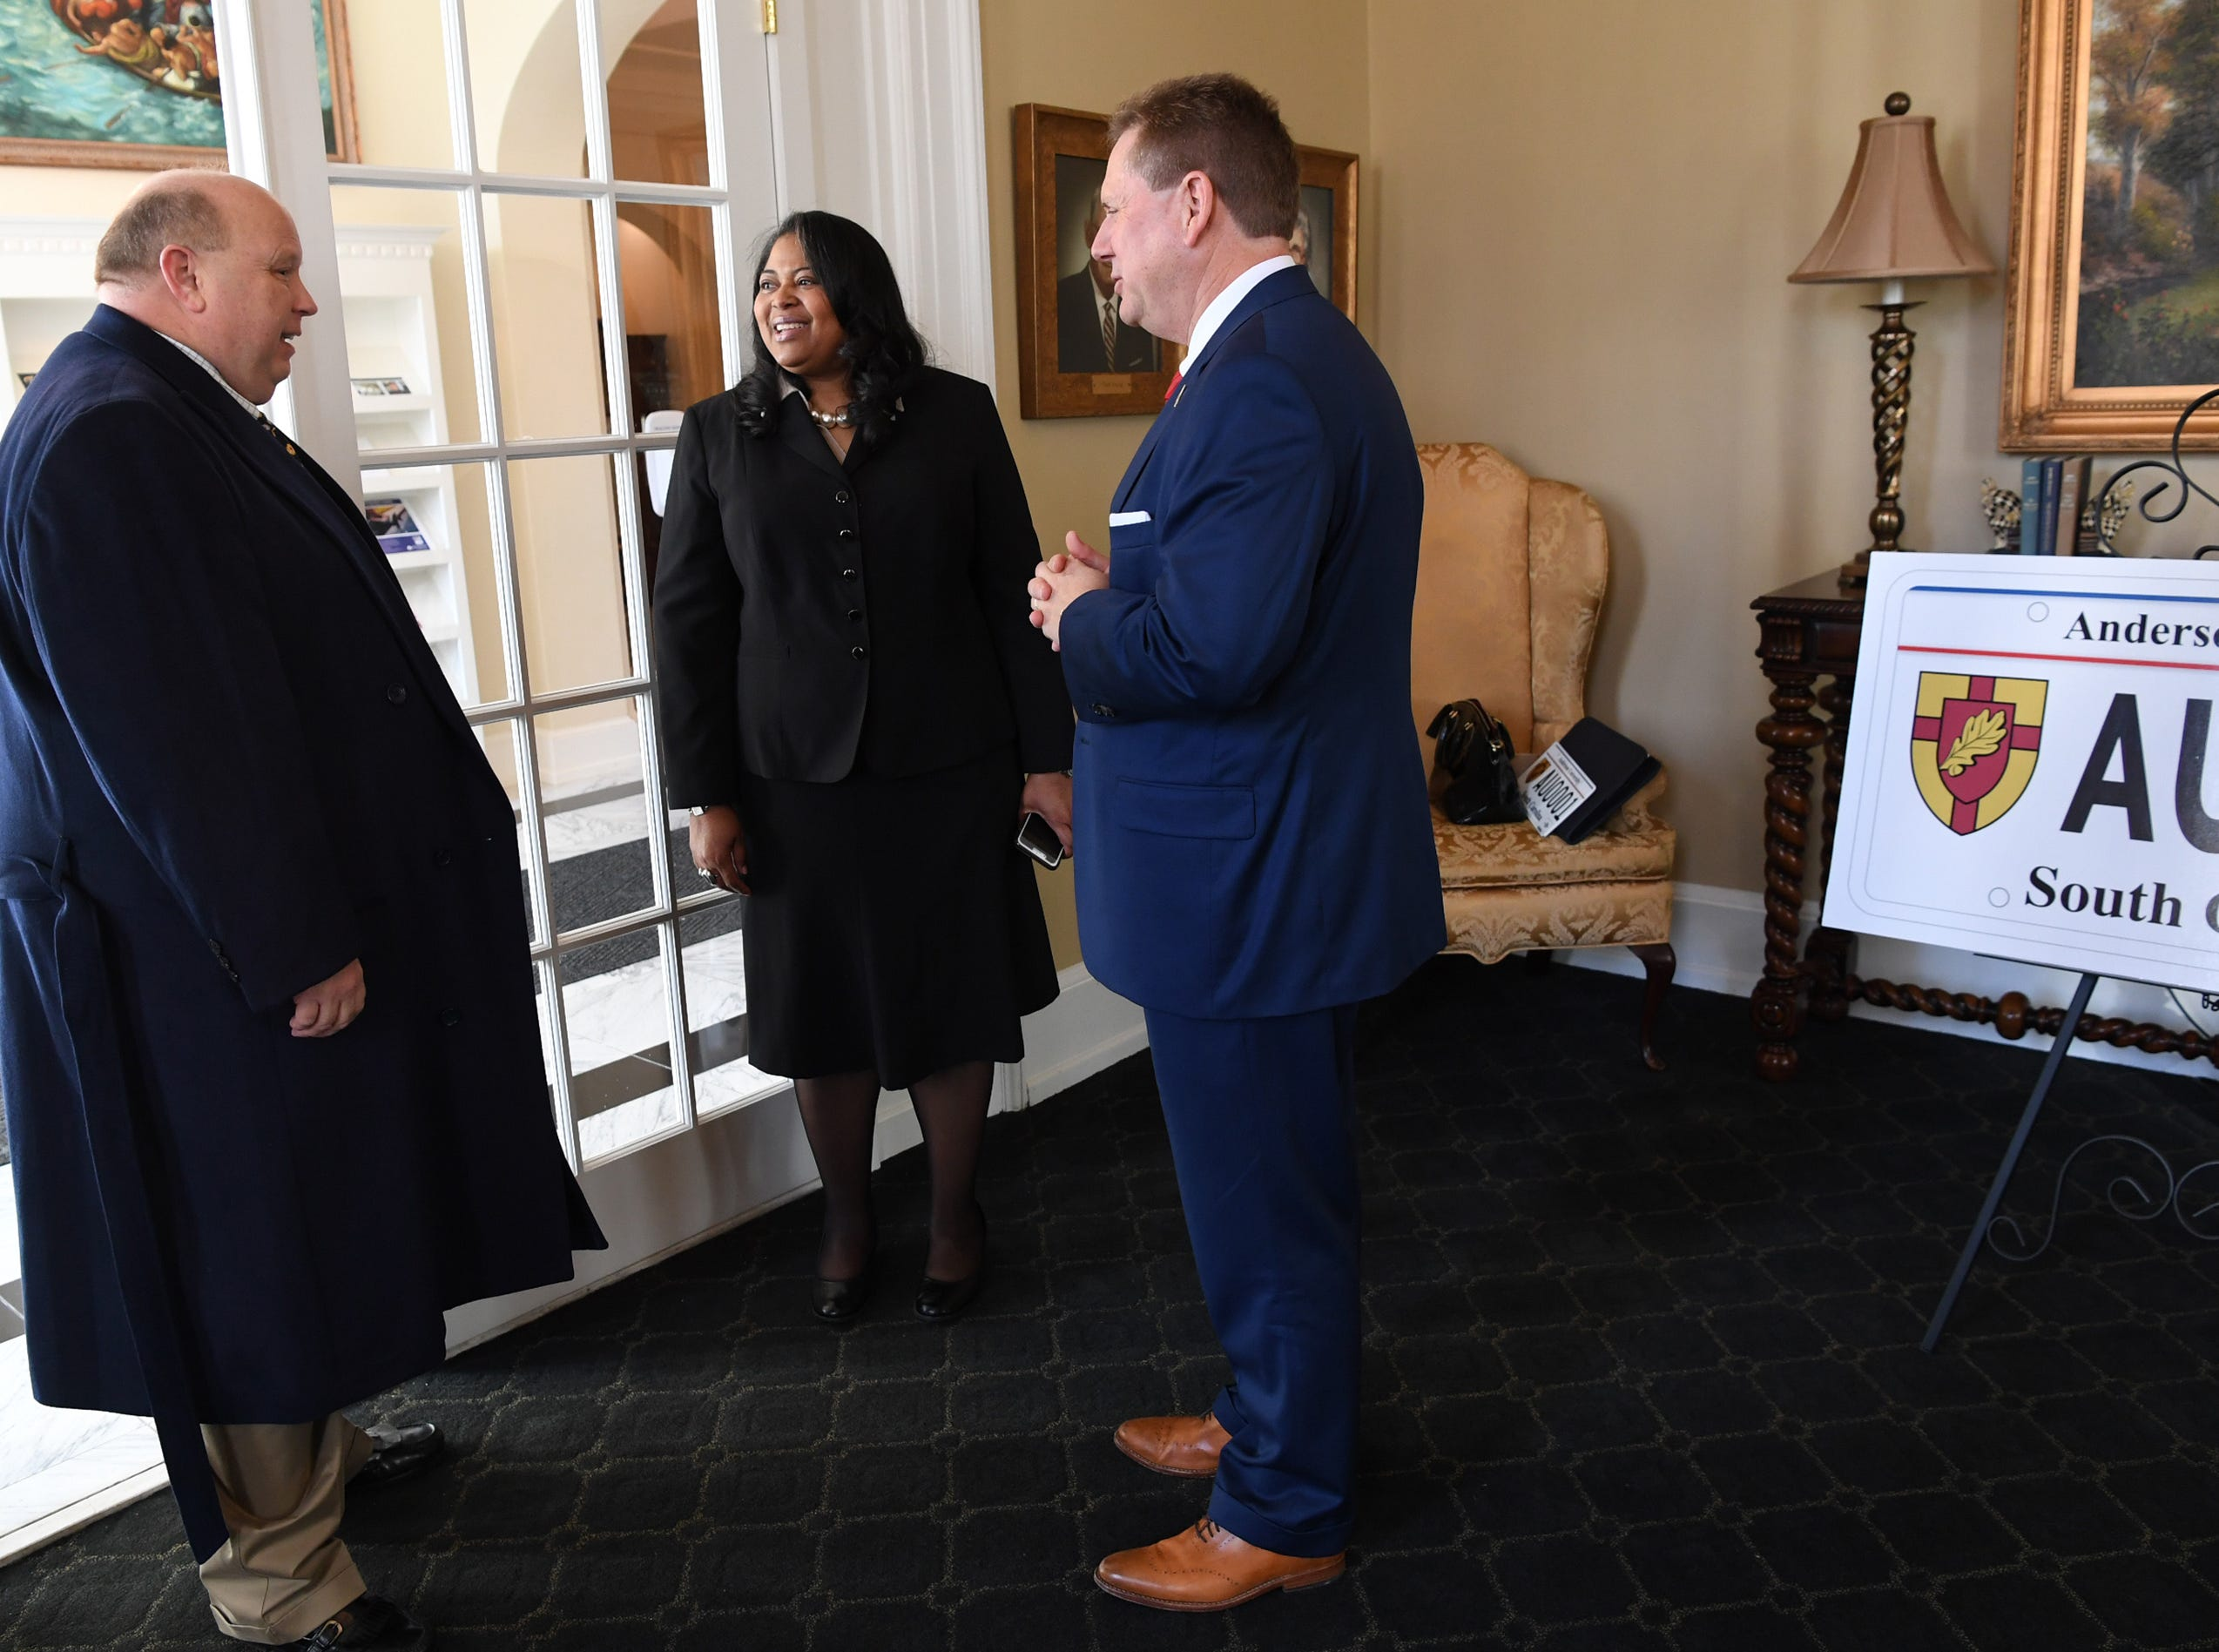 President Evans Whitaker, left, of Anderson University, Hermena Perkins-Brown, right, plate office director of the South Carolina Department of Motor Vehicles, and Wayne Landrith, right, meet before announcing a new personalized license plate during a press conference at the campus administration building in Anderson Friday morning. The University plate, along with Clemson University and the University of South Carolina, are the only college or university plates available to personalize, said Perkins-Brown. The Anderson University plates can be applied for starting Monday, January 28, 2019 in person, not online, for $100 and an added fee if personalizing.